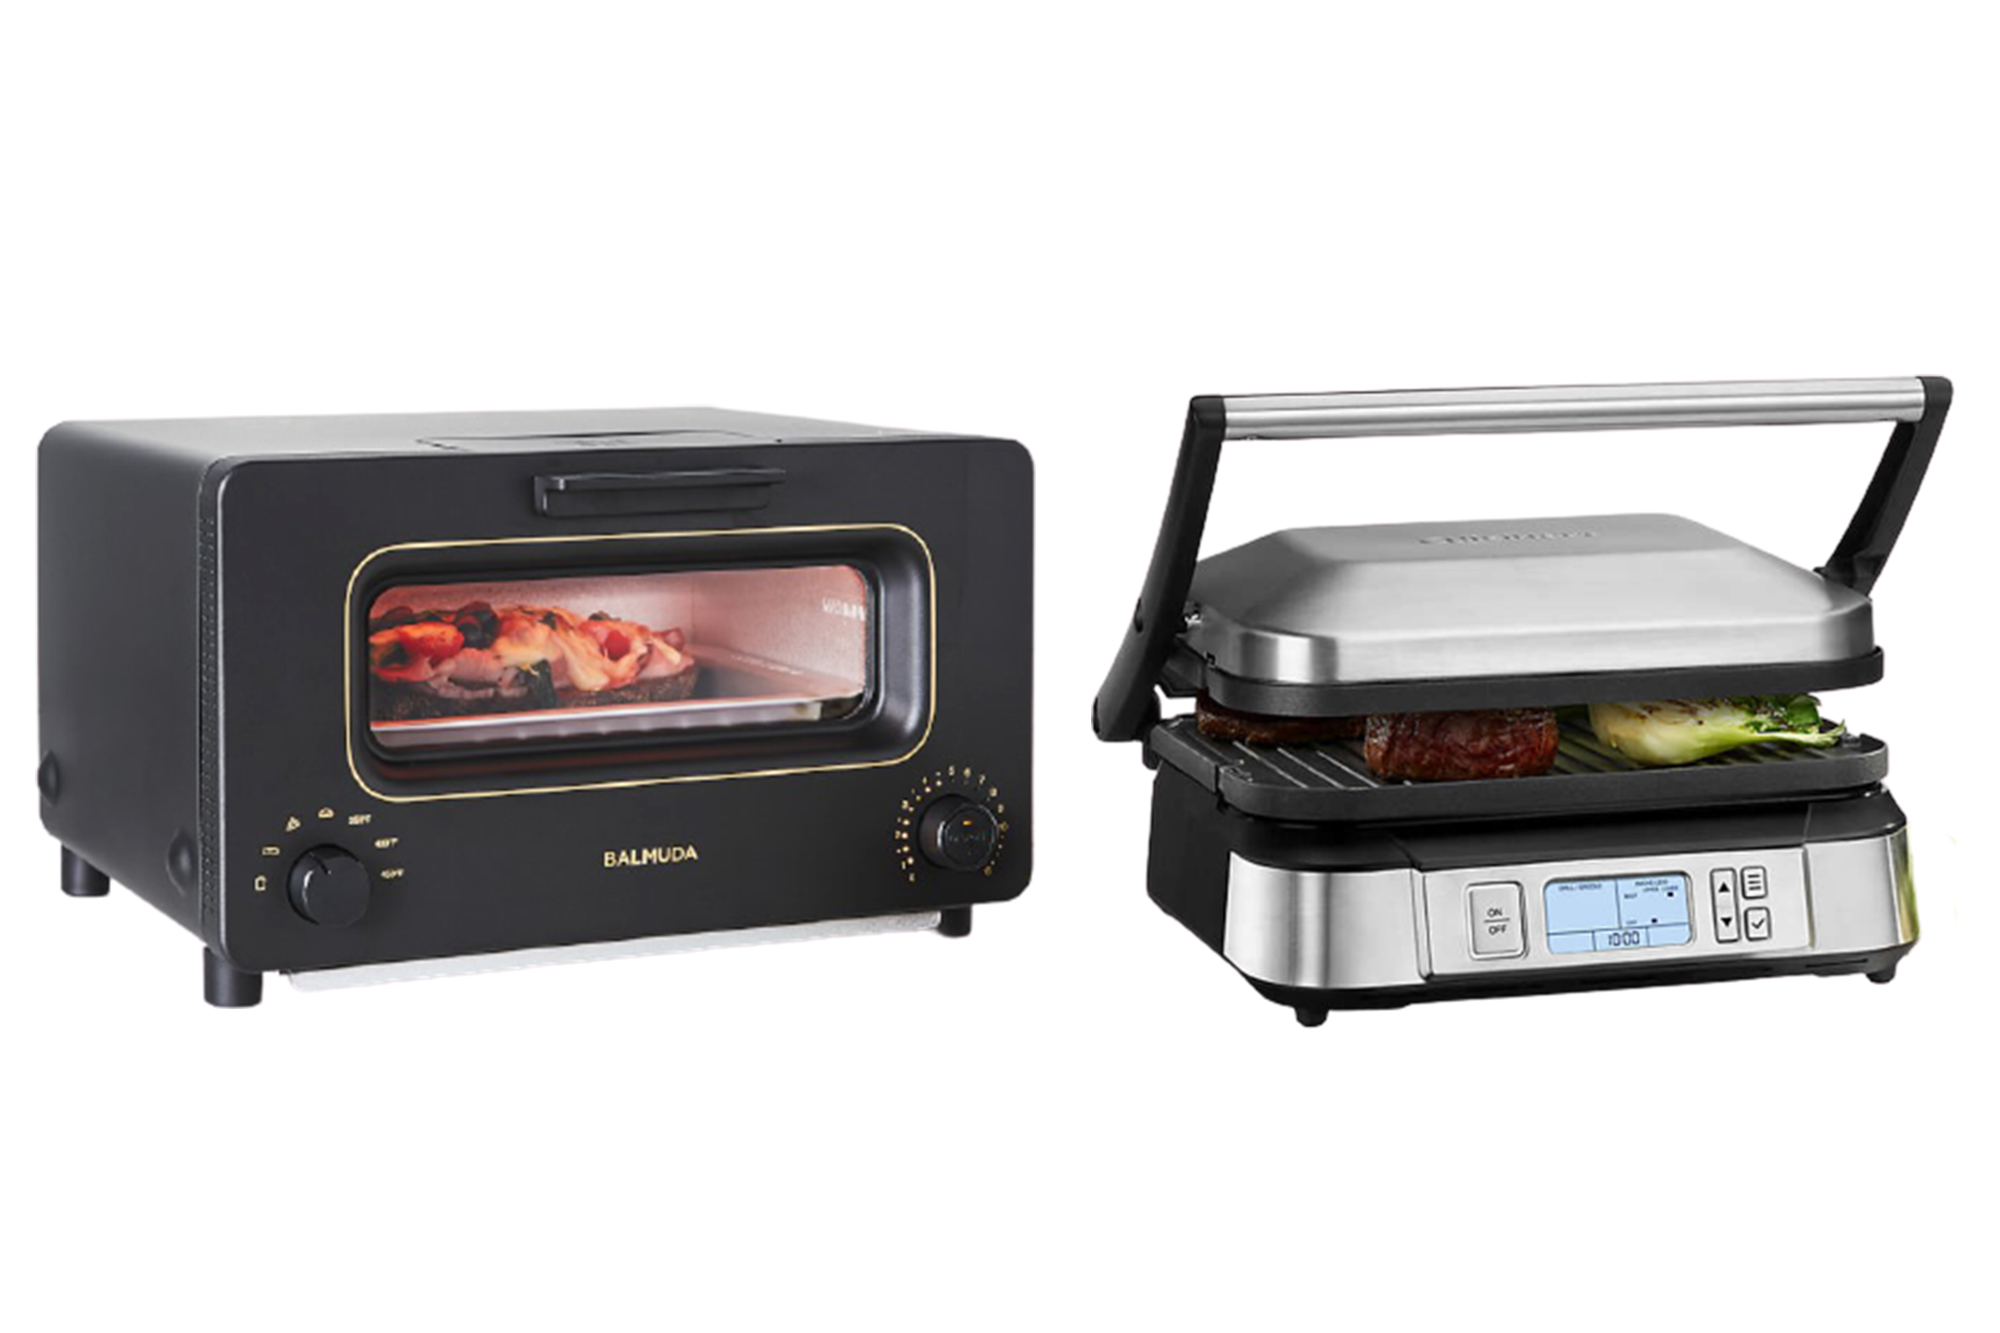 balmuda toaster and cuisinart grill